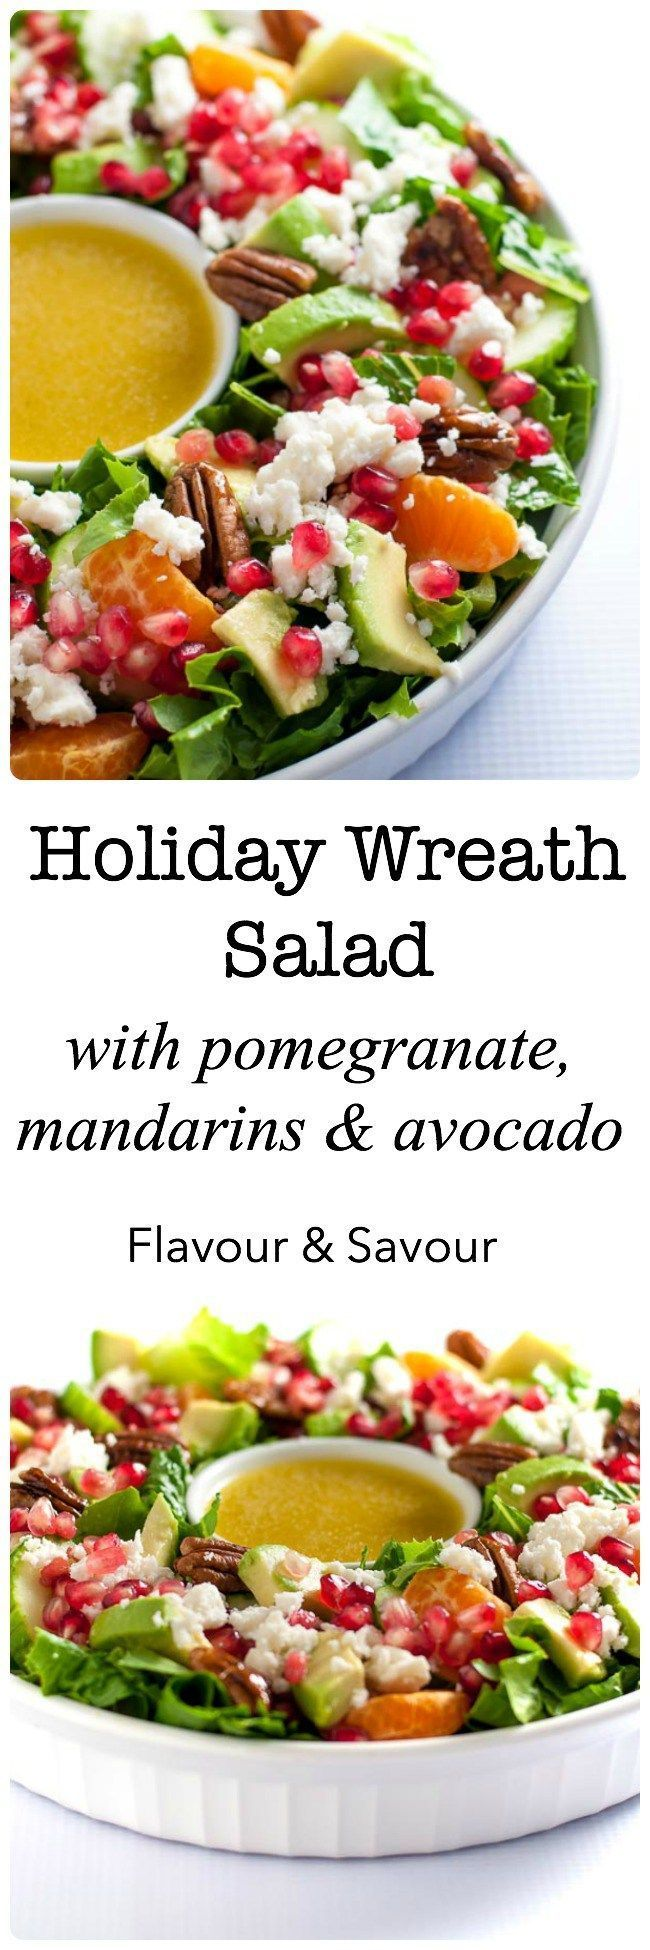 This Pomegranate Mandarin Salad with Avocado and Feta is a festive salad for any winter meal! It's bursting with fruit rich in Vitamin C, crunchy pecans and creamy avocado, and topped with crumbled feta or goat cheese. Serve it as a holiday wreath just for fun!  www.flavourandsavour.com